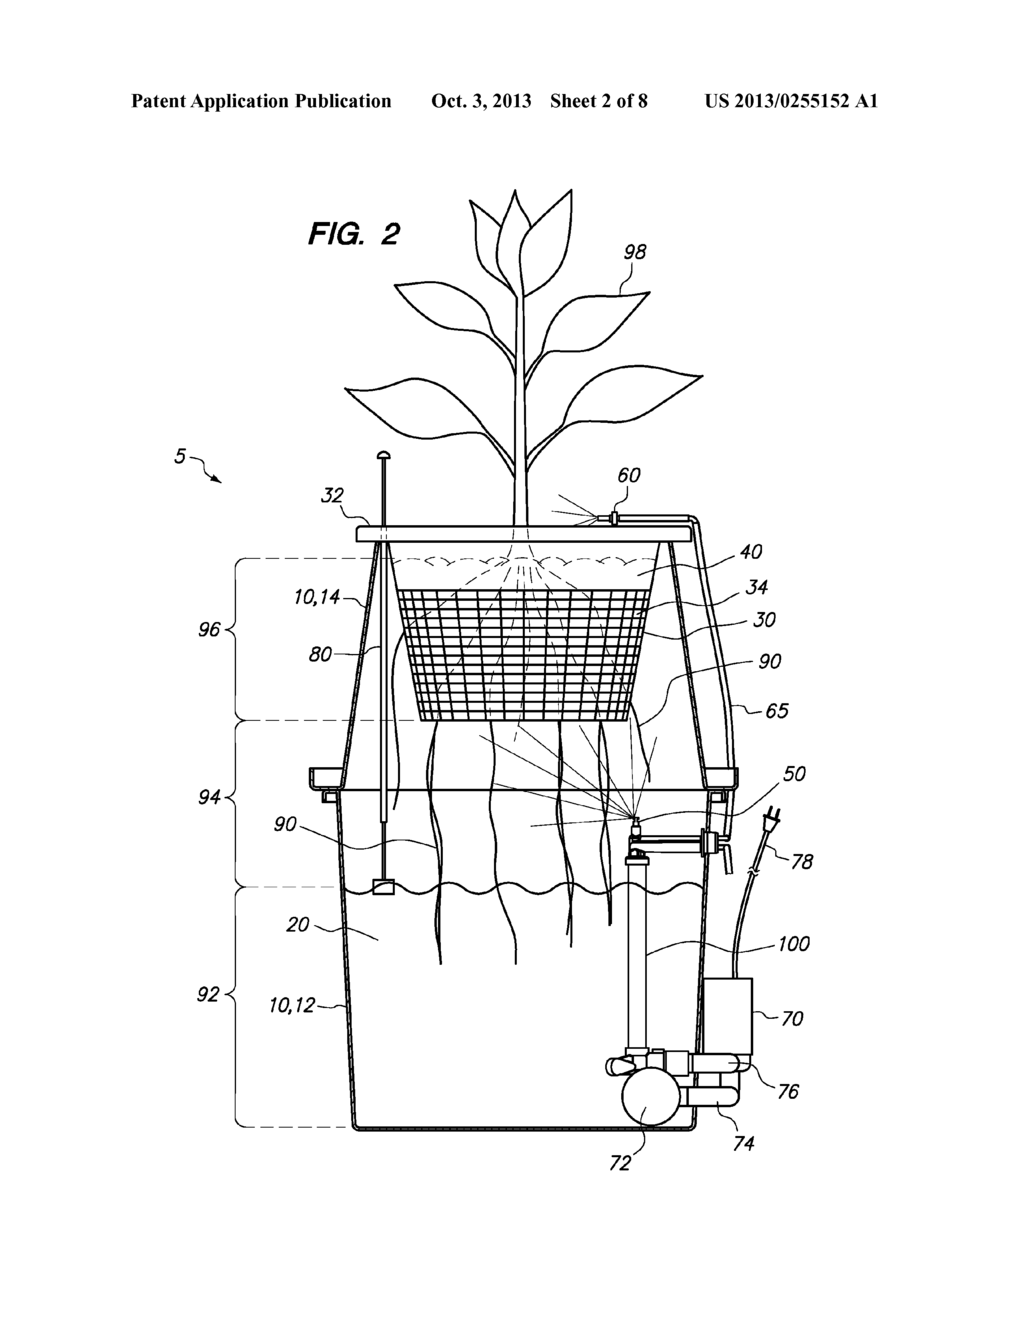 Hydroponic plant container with highly oxygenated nutrient hydroponic plant container with highly oxygenated nutrient solution using continuous air injection and continuous coriolis effect mixing diagram pooptronica